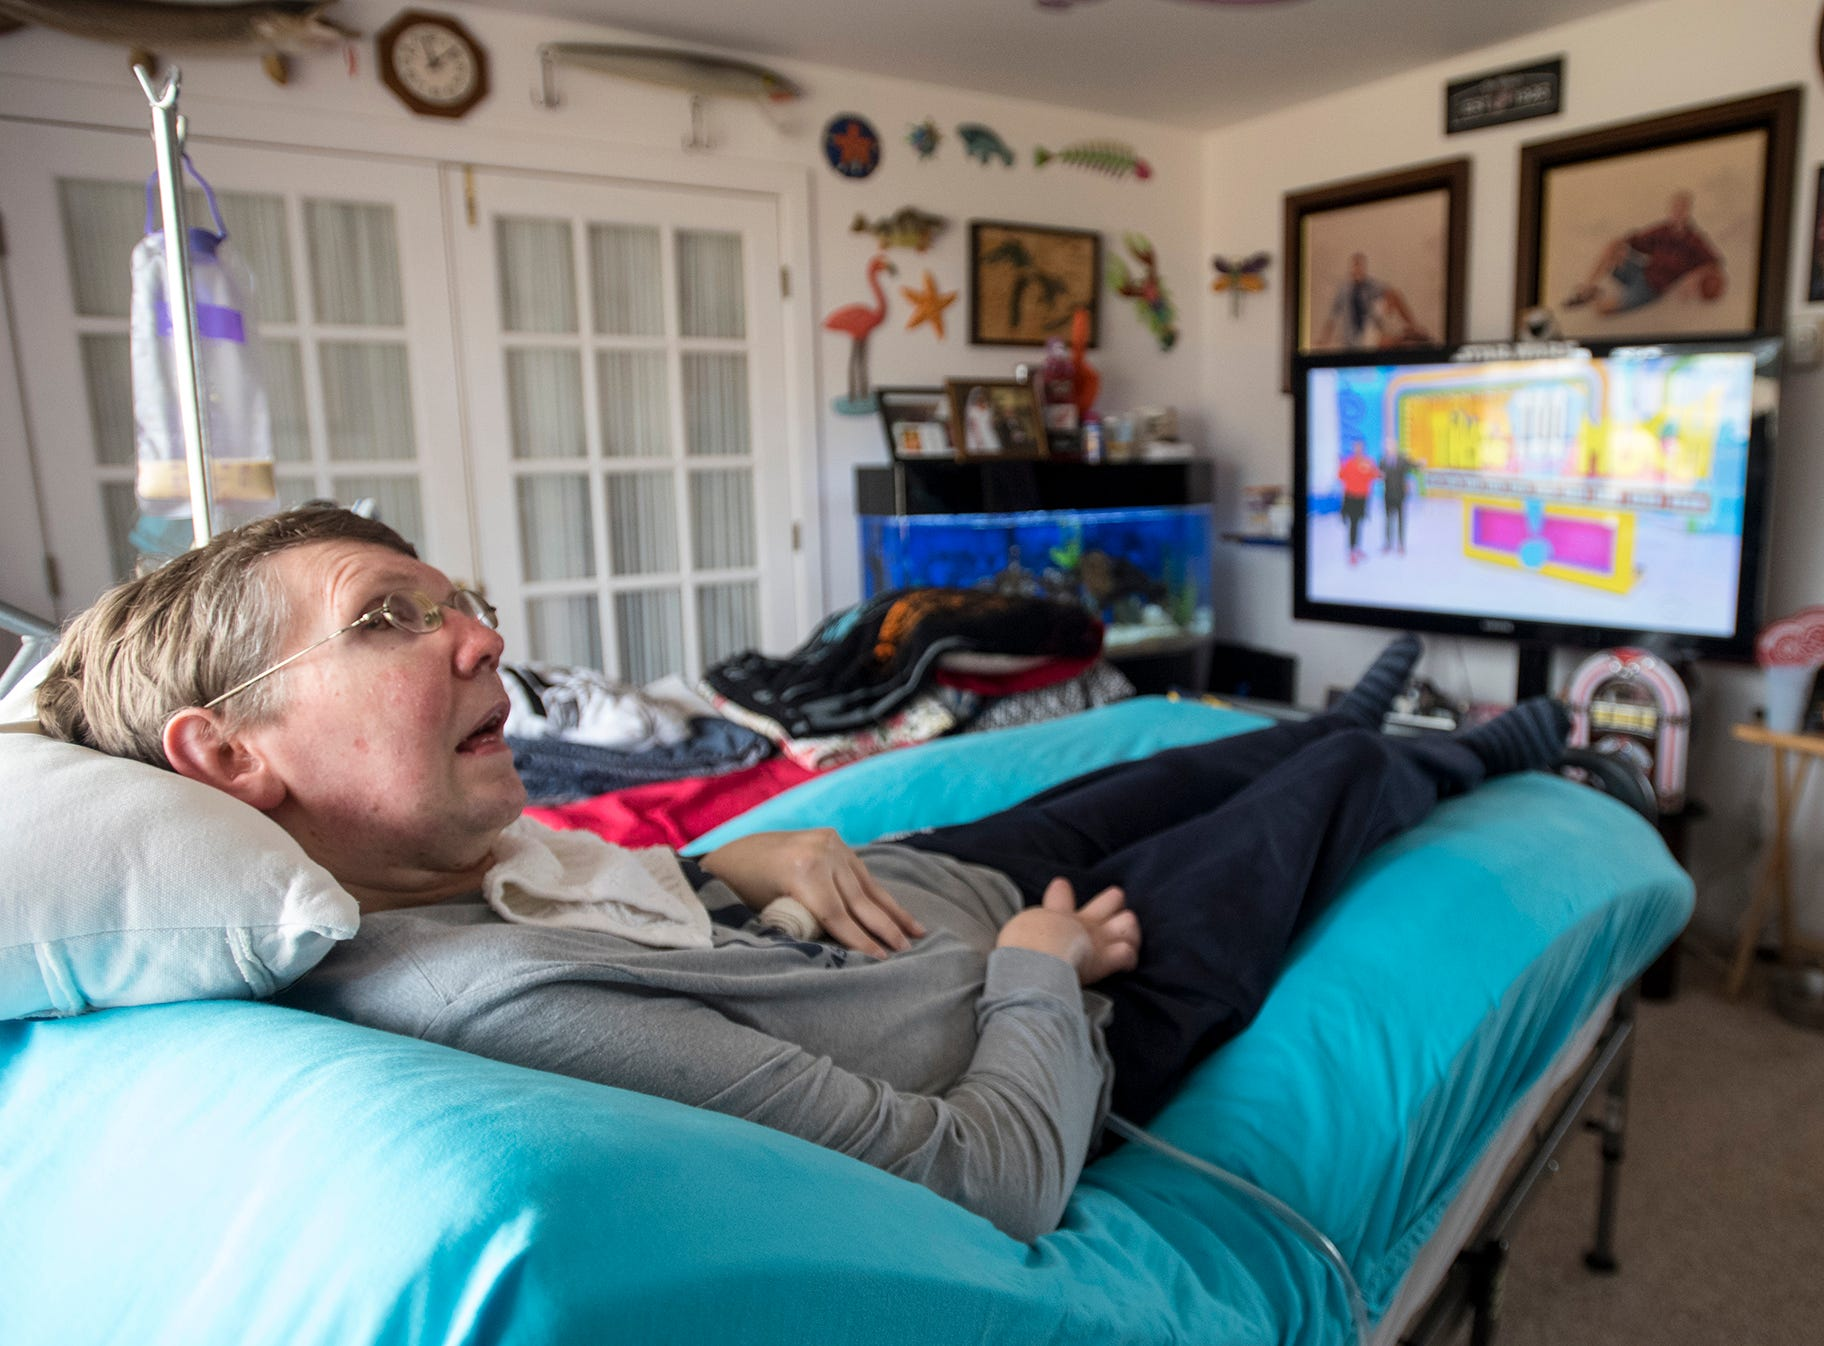 John Sullivan lays on a special bed in the living room of the Sullivan's Marlette home Thursday, Jan. 17, 2019. The big screen television set is left on 24 hours to help keep John calm when he wakes up.